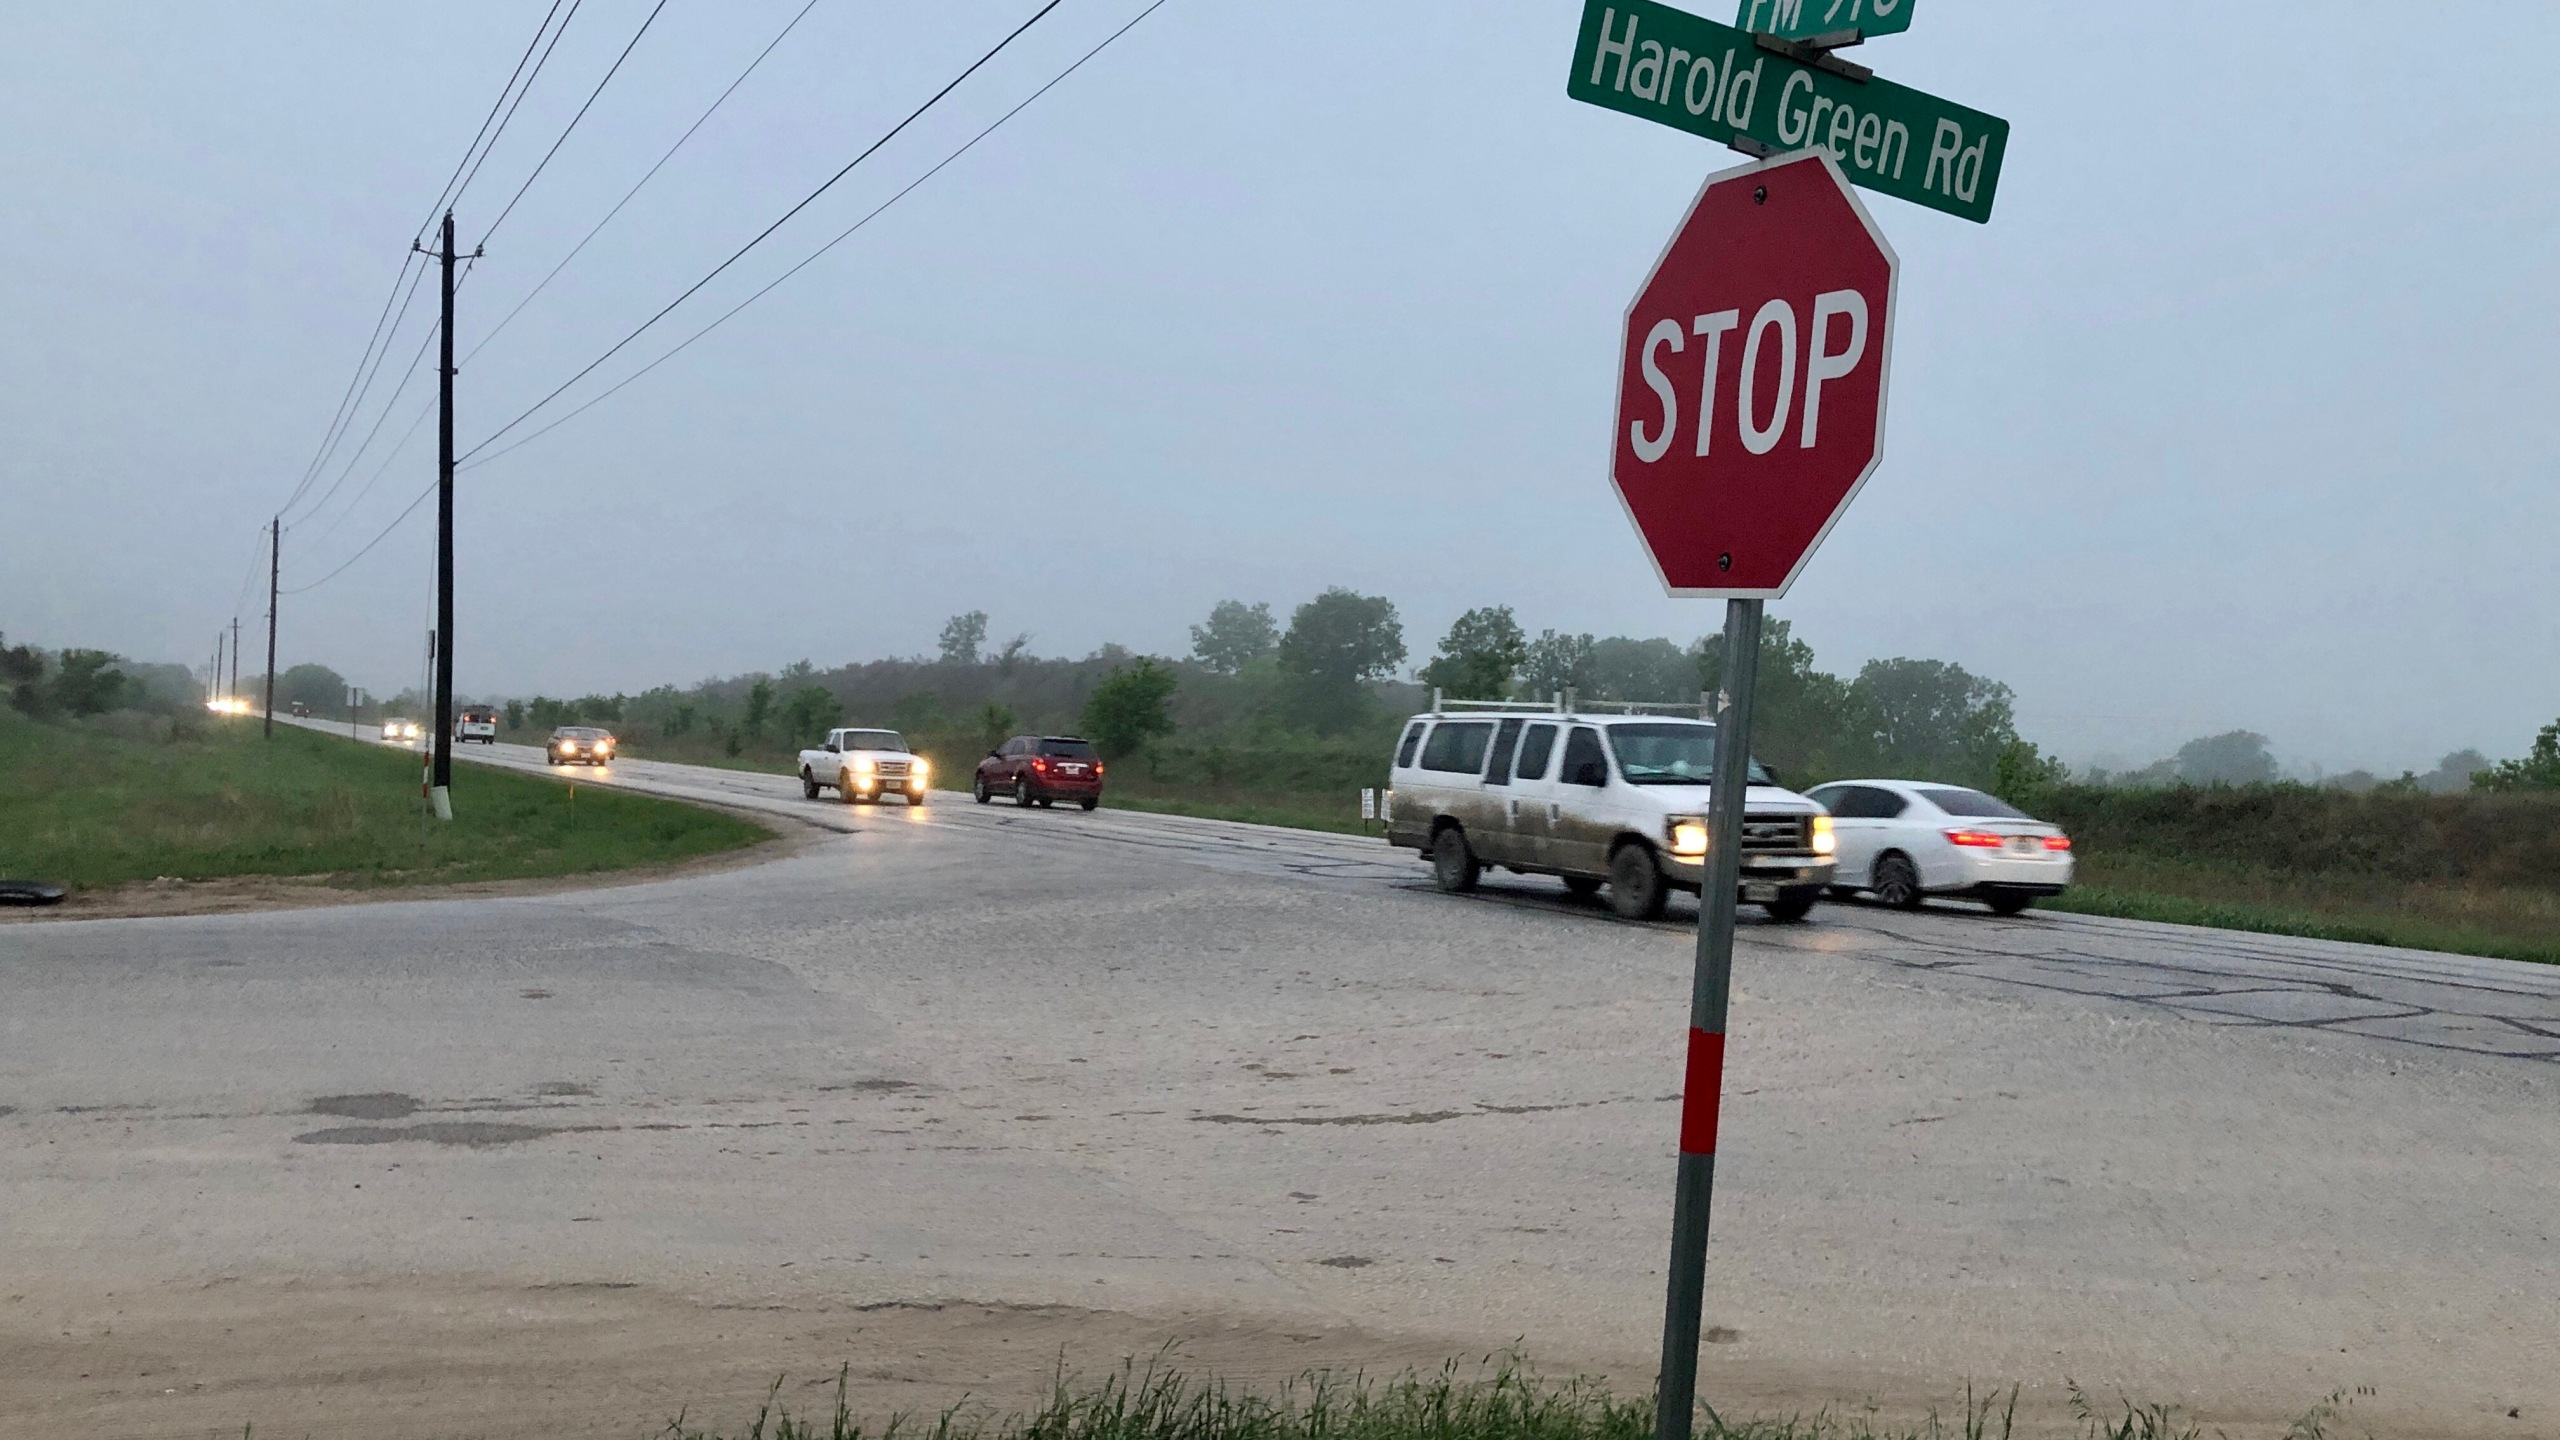 Traffic at the corner of FM 973 & Harold Green Road in southeast Travis County. (KXAN Photo/Julie Karam)